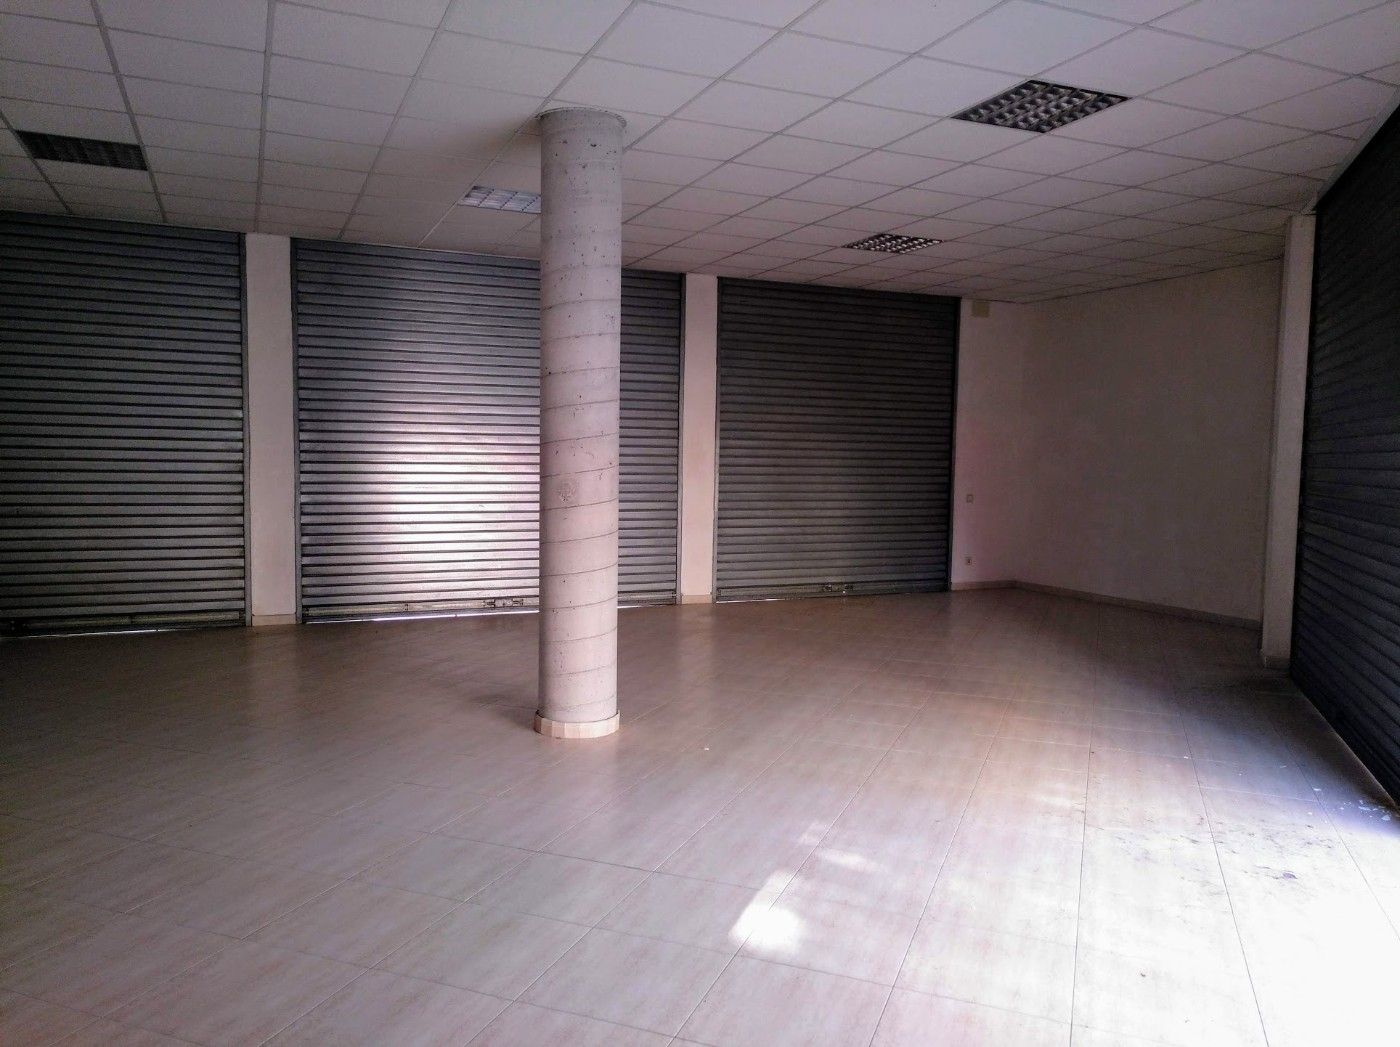 Local commercial  Barriada nova. Local esquinero en venta!!